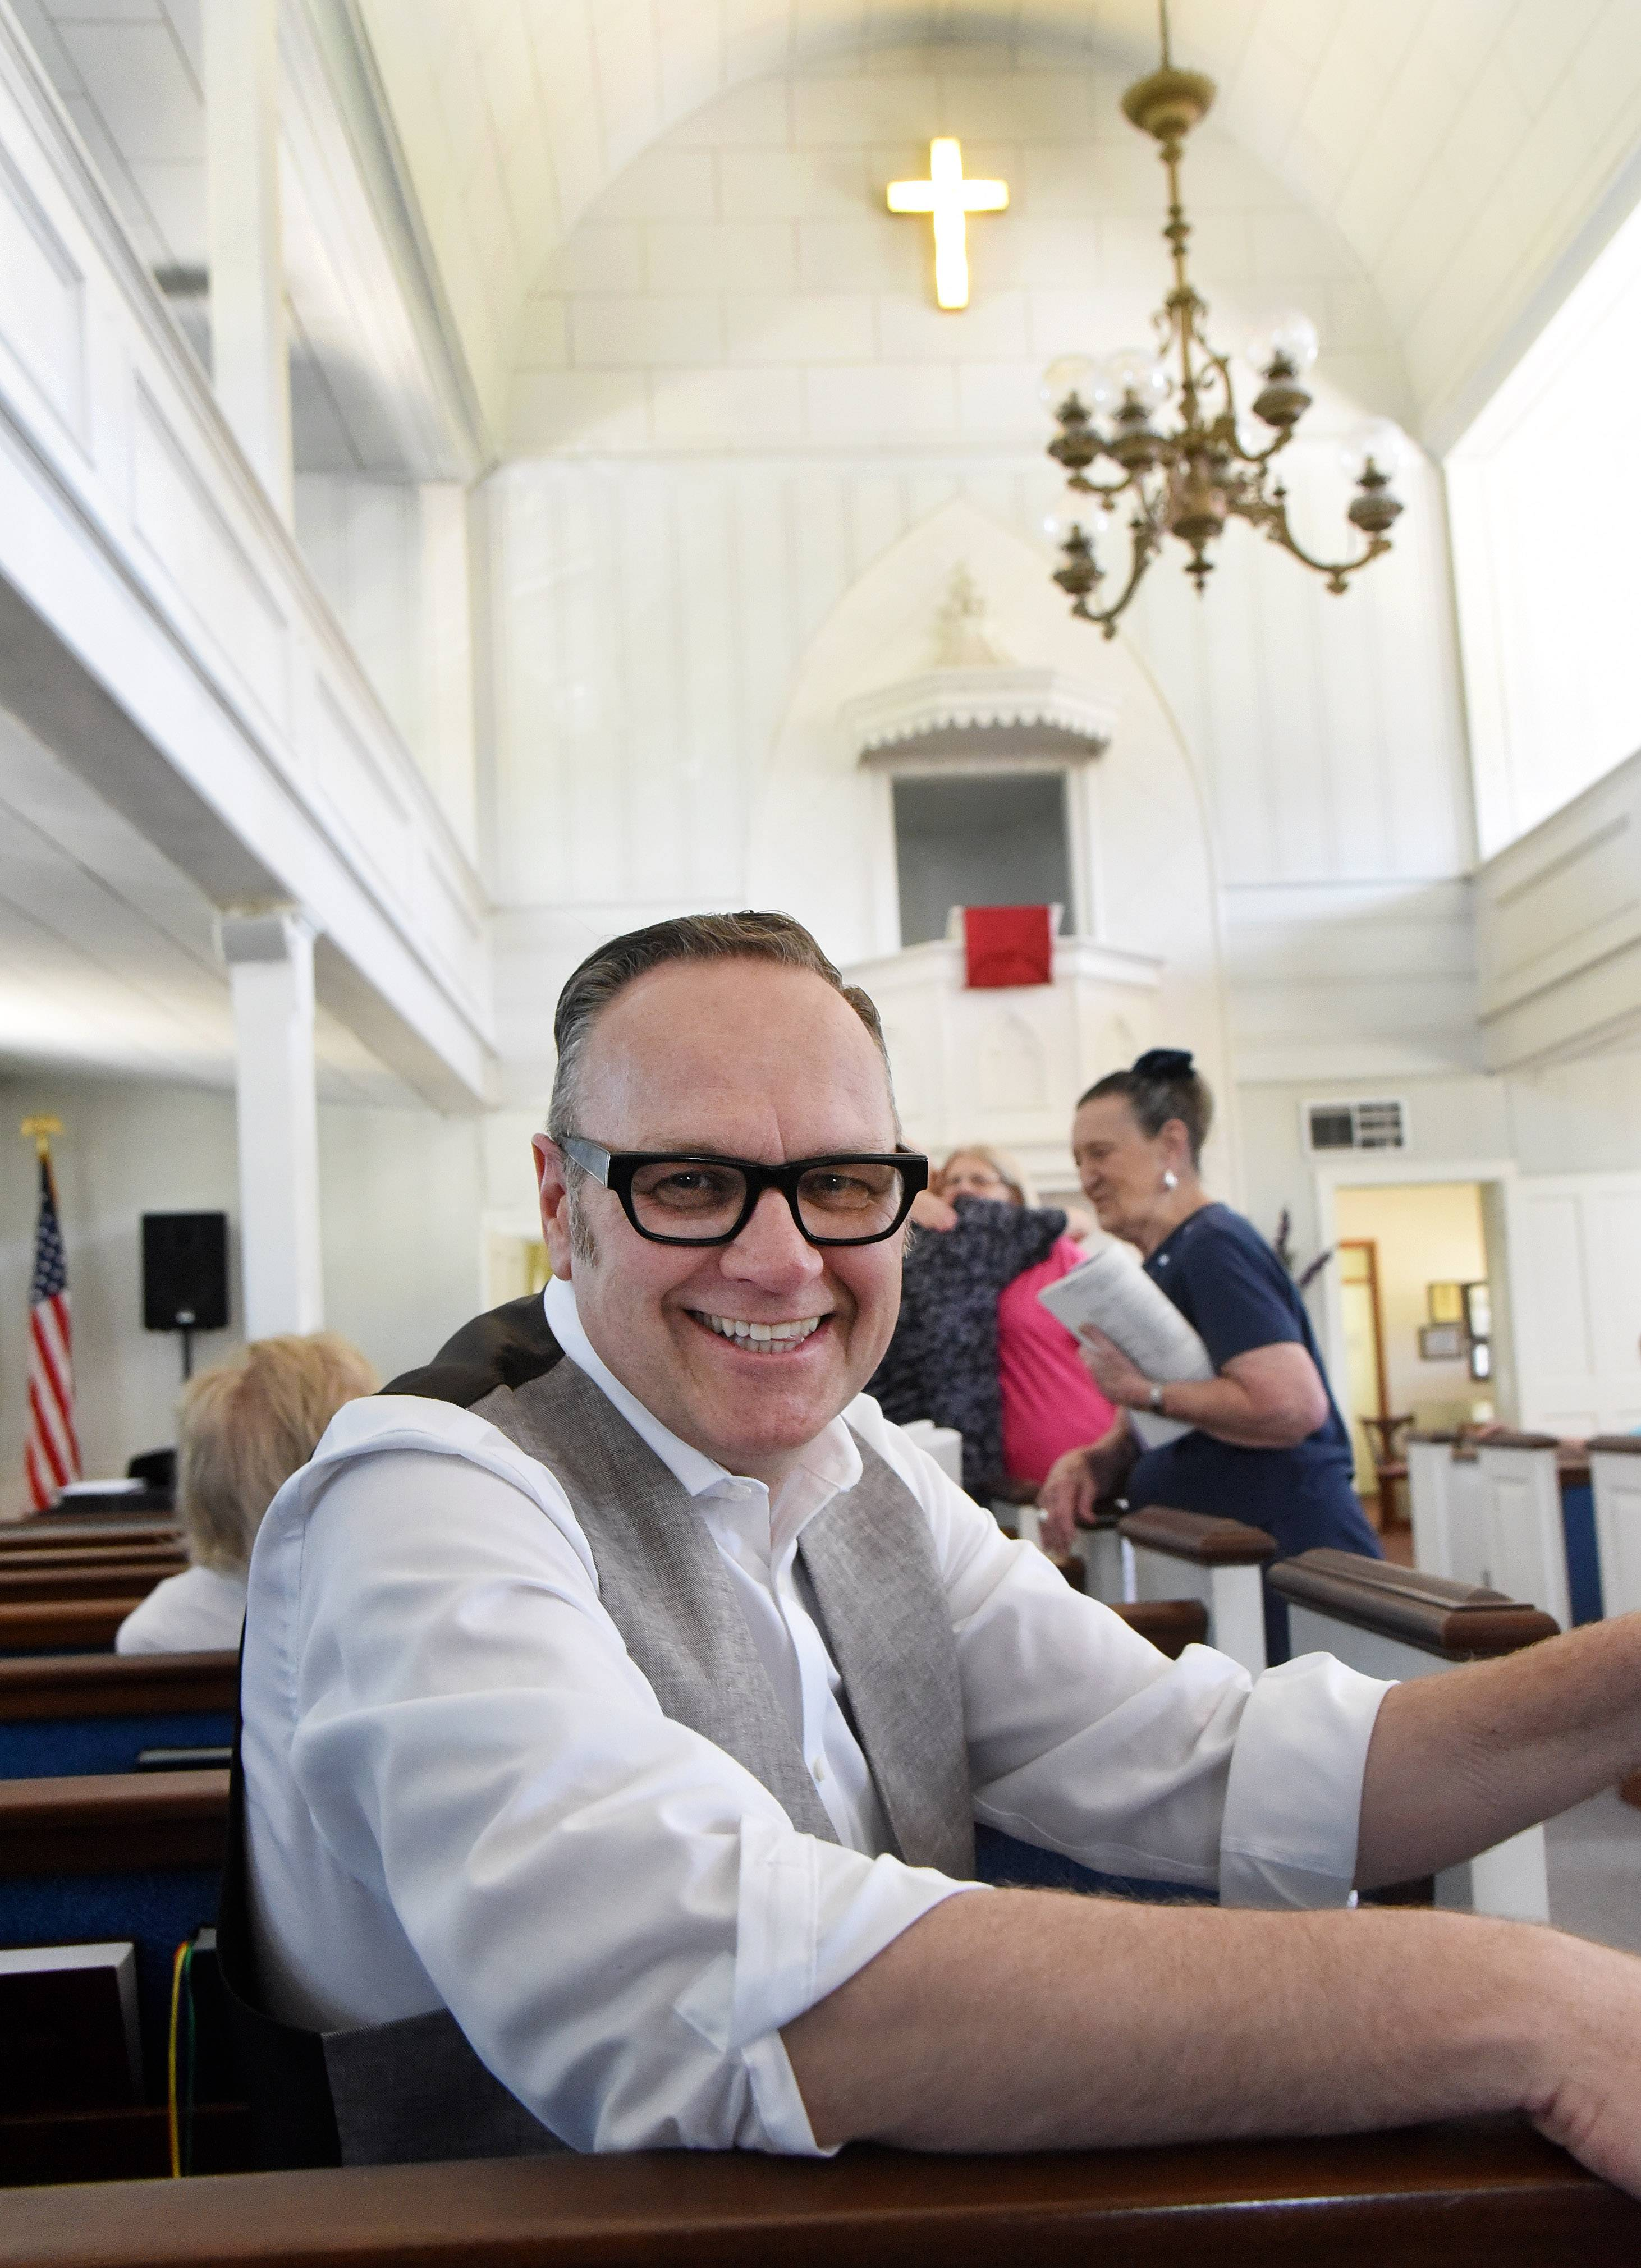 Fired after revealing gay marriage plans, music director helps launch new faith venture